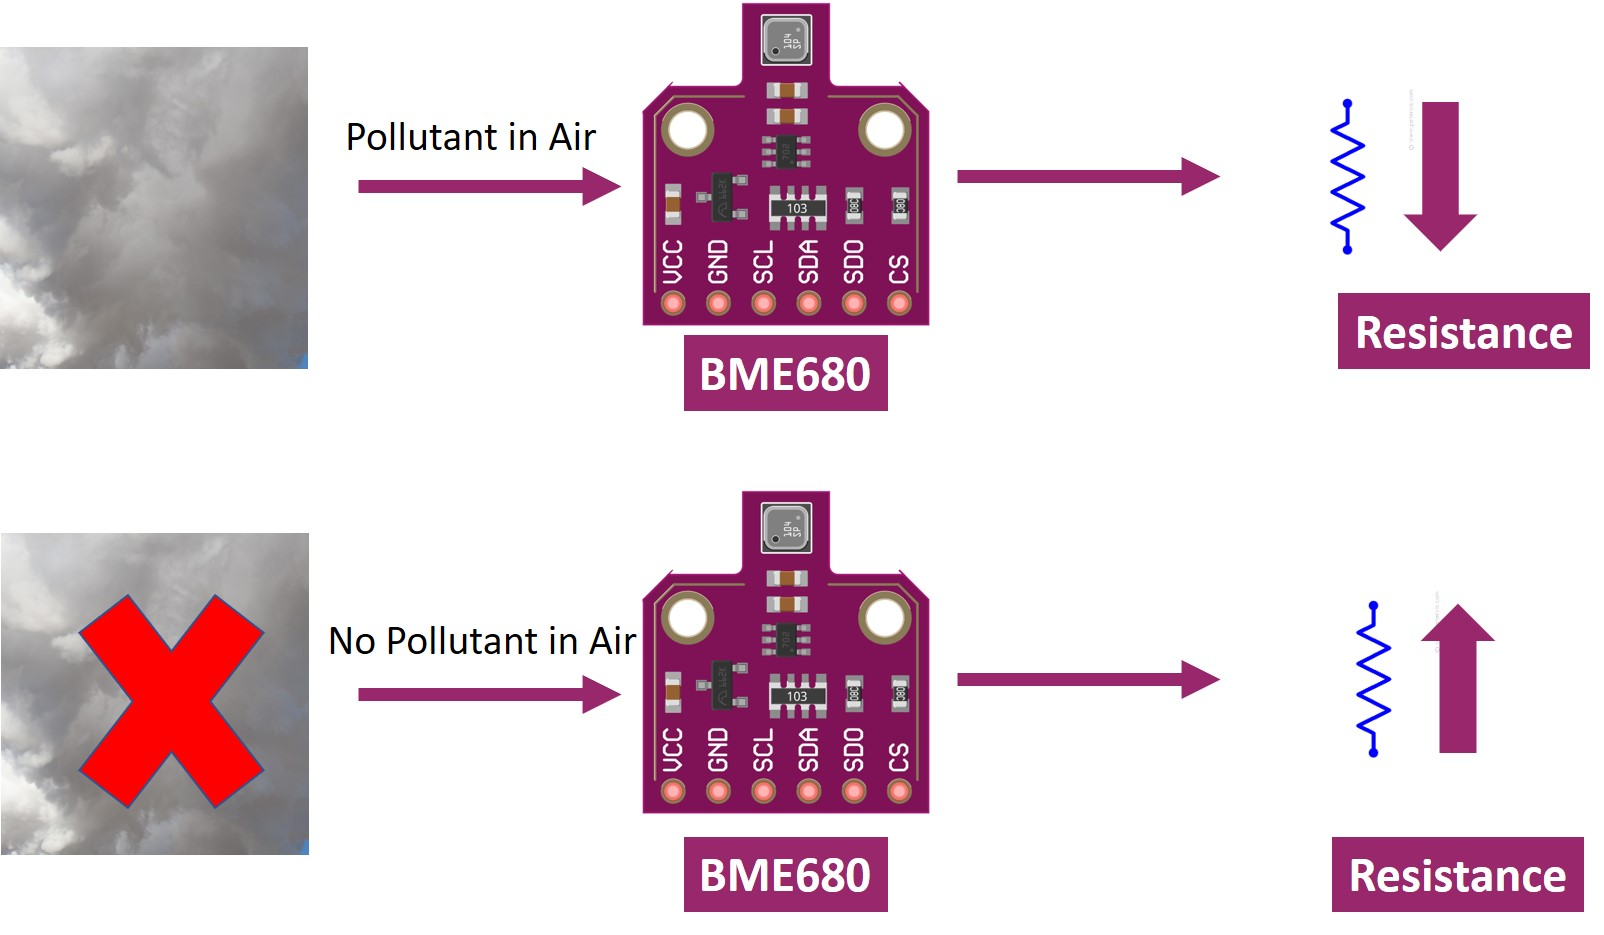 bme680 gas sensor resistance output and working